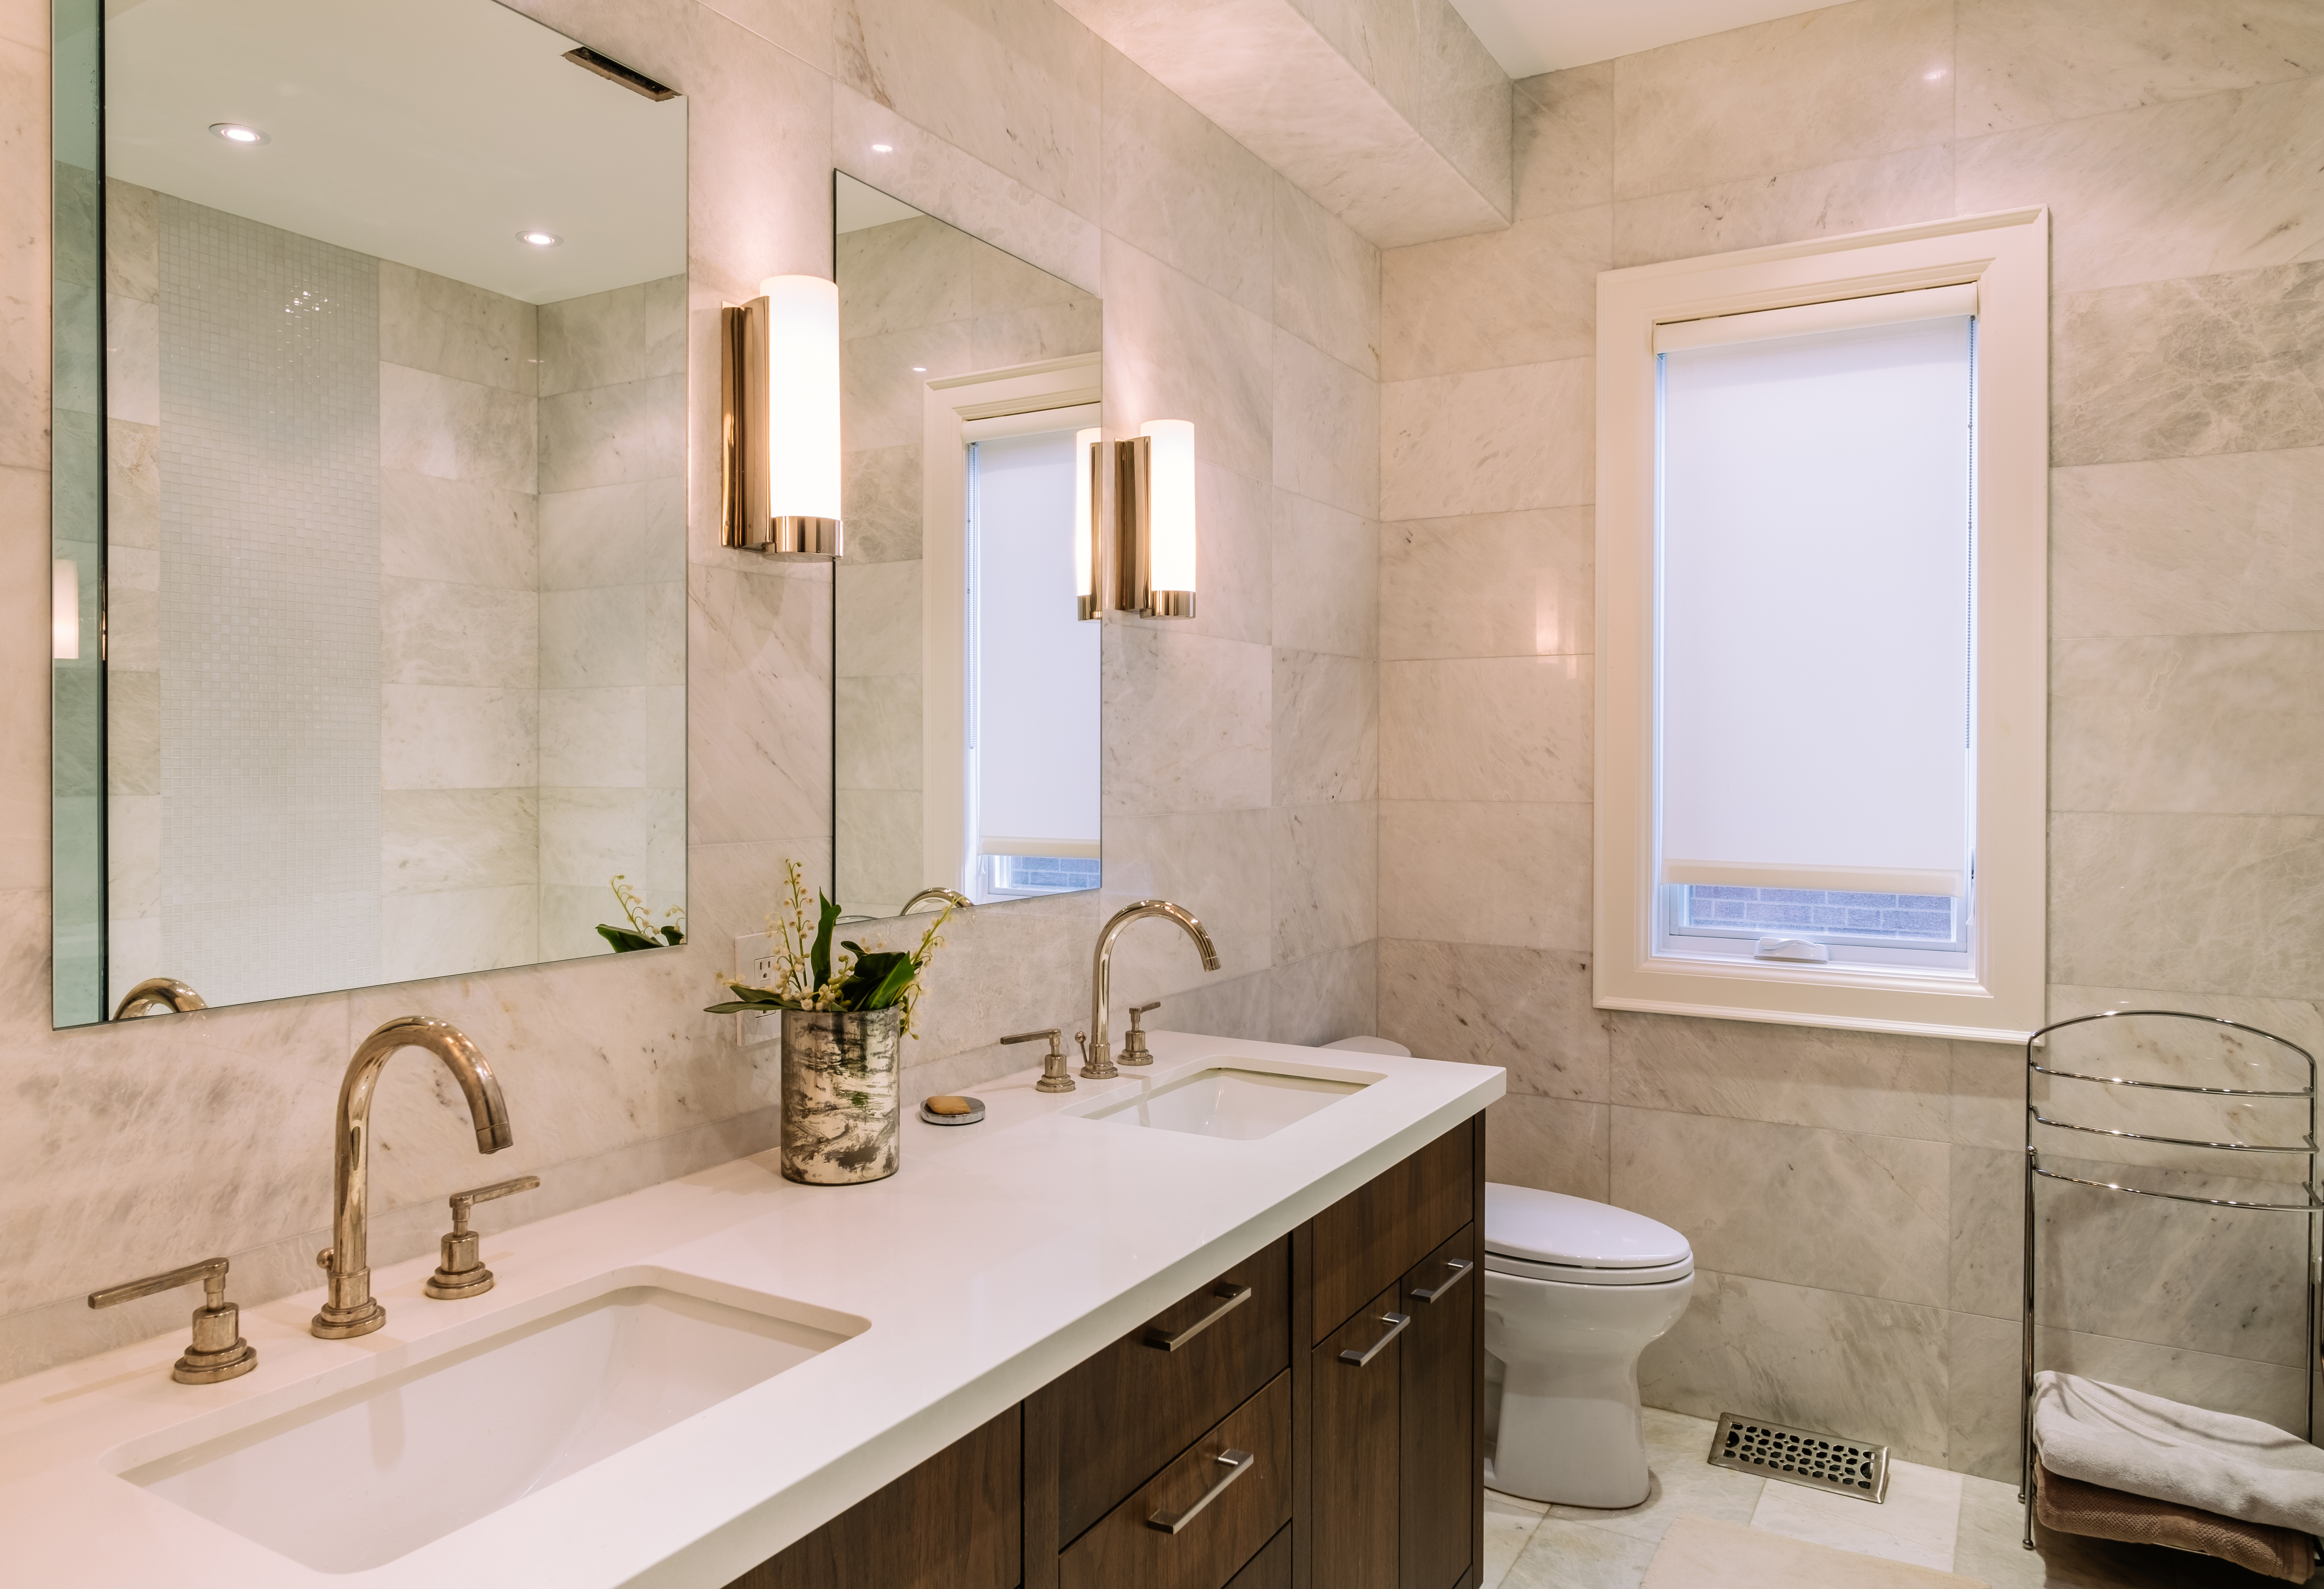 Groovy Typical Height Of Bathroom Vanity Lights Hunker Home Interior And Landscaping Ponolsignezvosmurscom